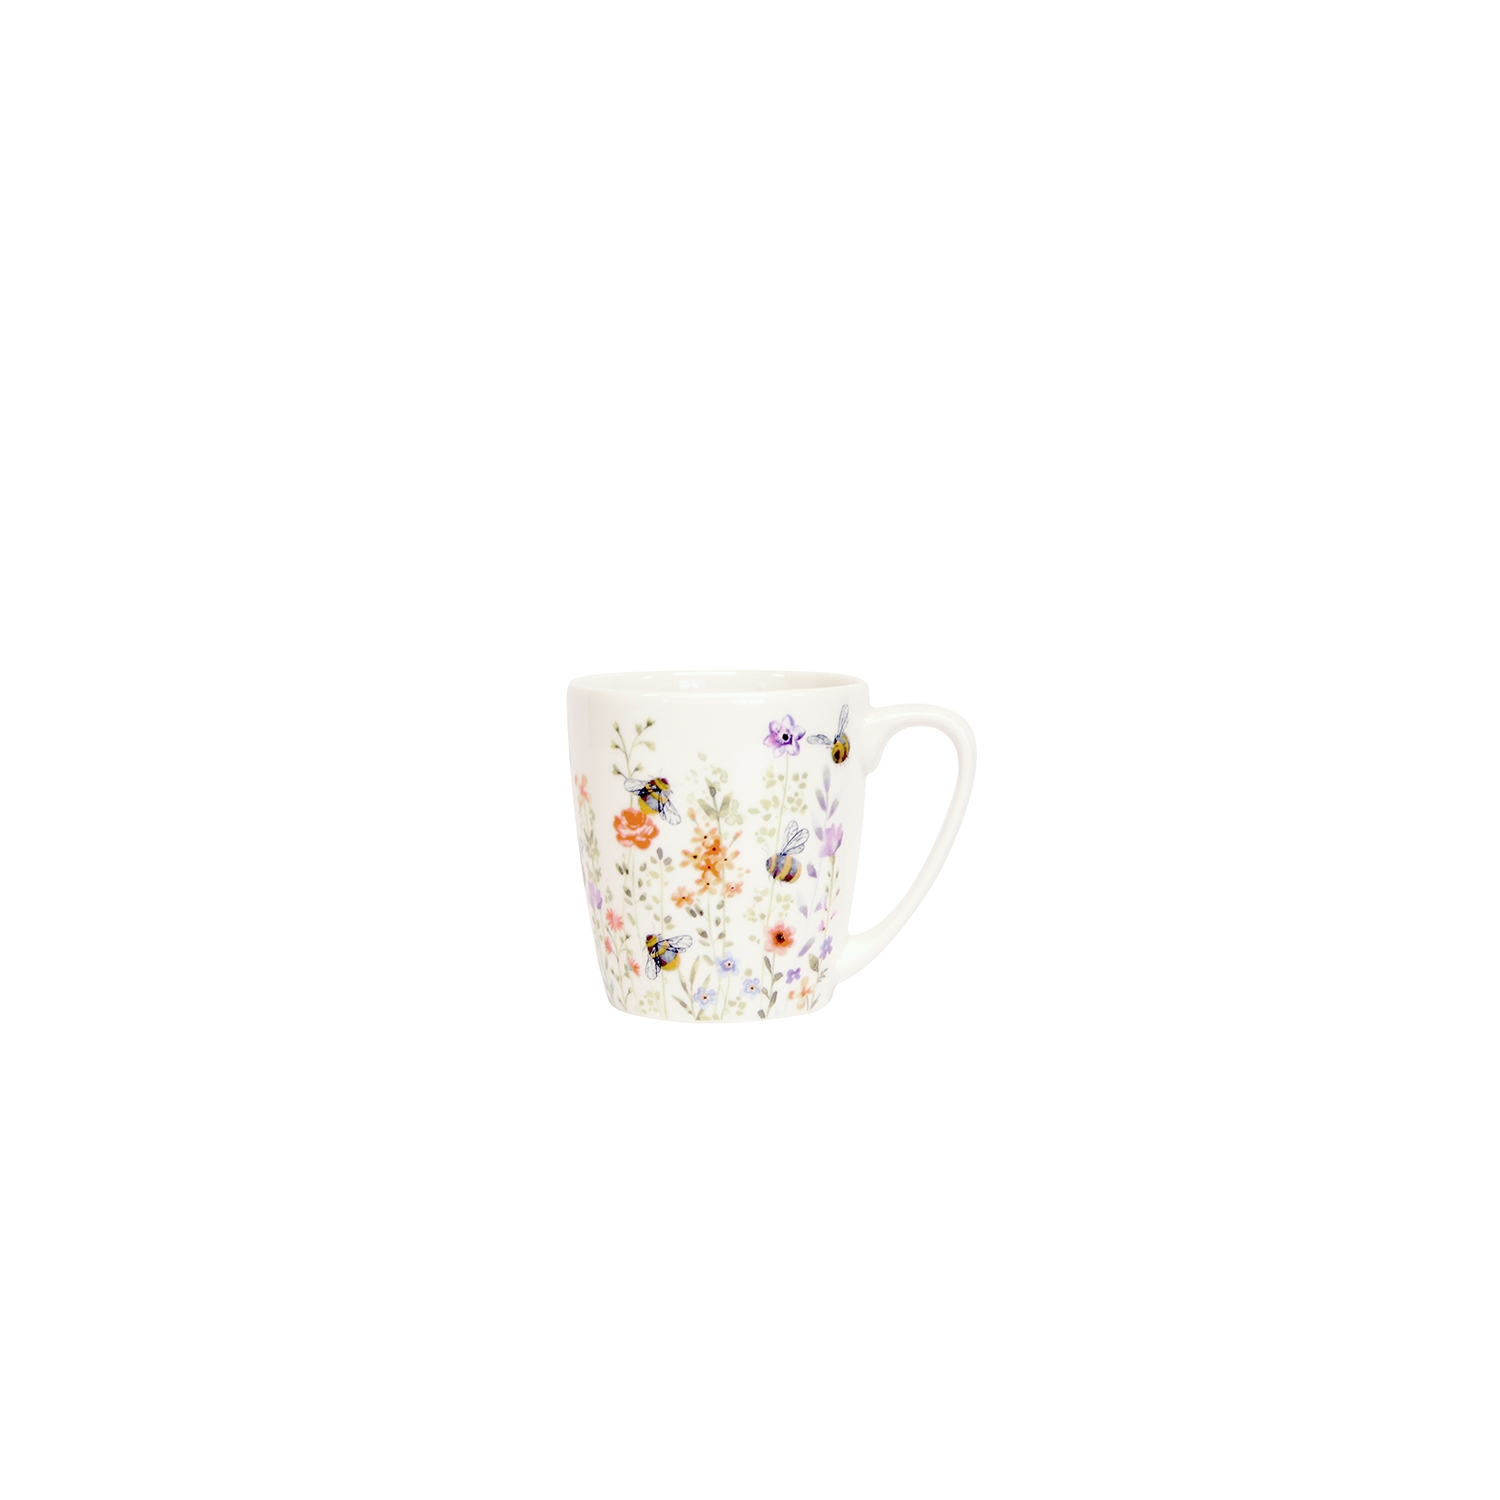 Image of Churchill China, Bee Watch Mug, 300ml, White